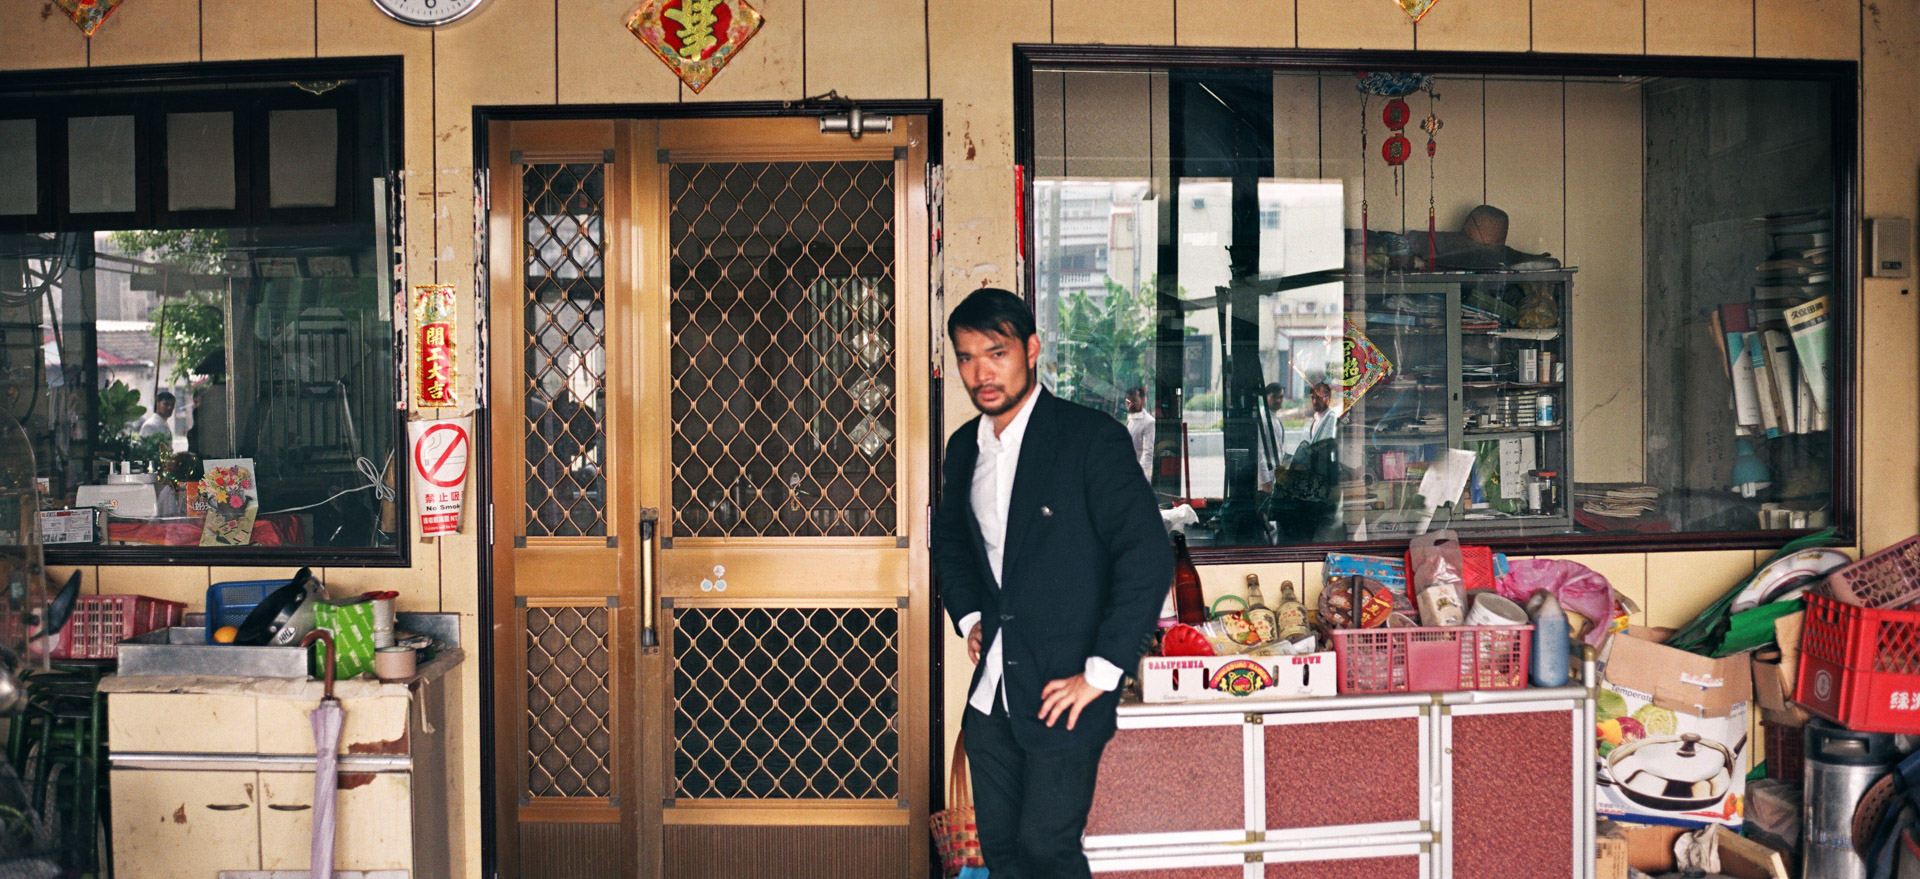 A very sweaty asian in a dark suit, standing next to two windows with the same asian in a white suit walking past in the reflection.